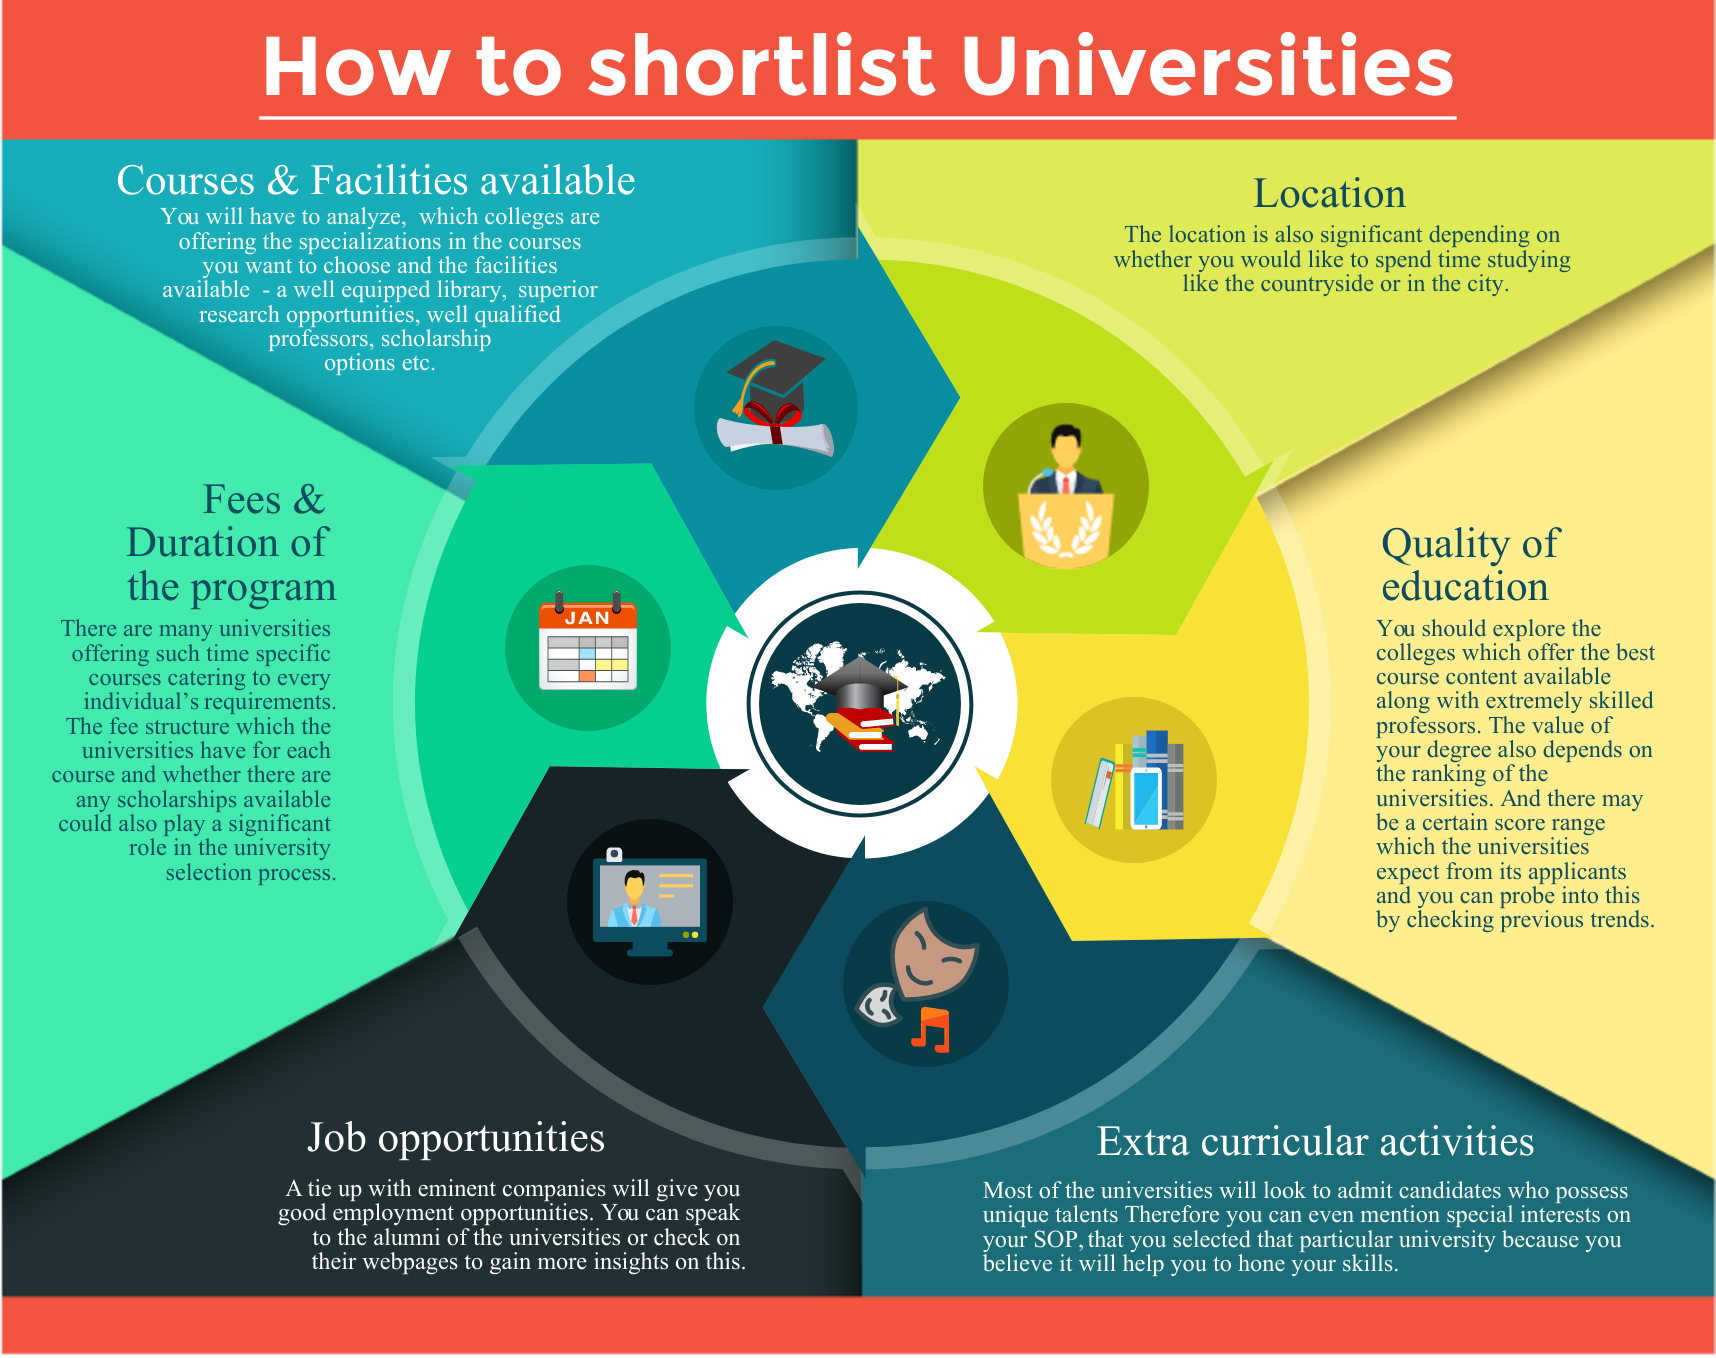 How to Shortlist Universities for MBA?